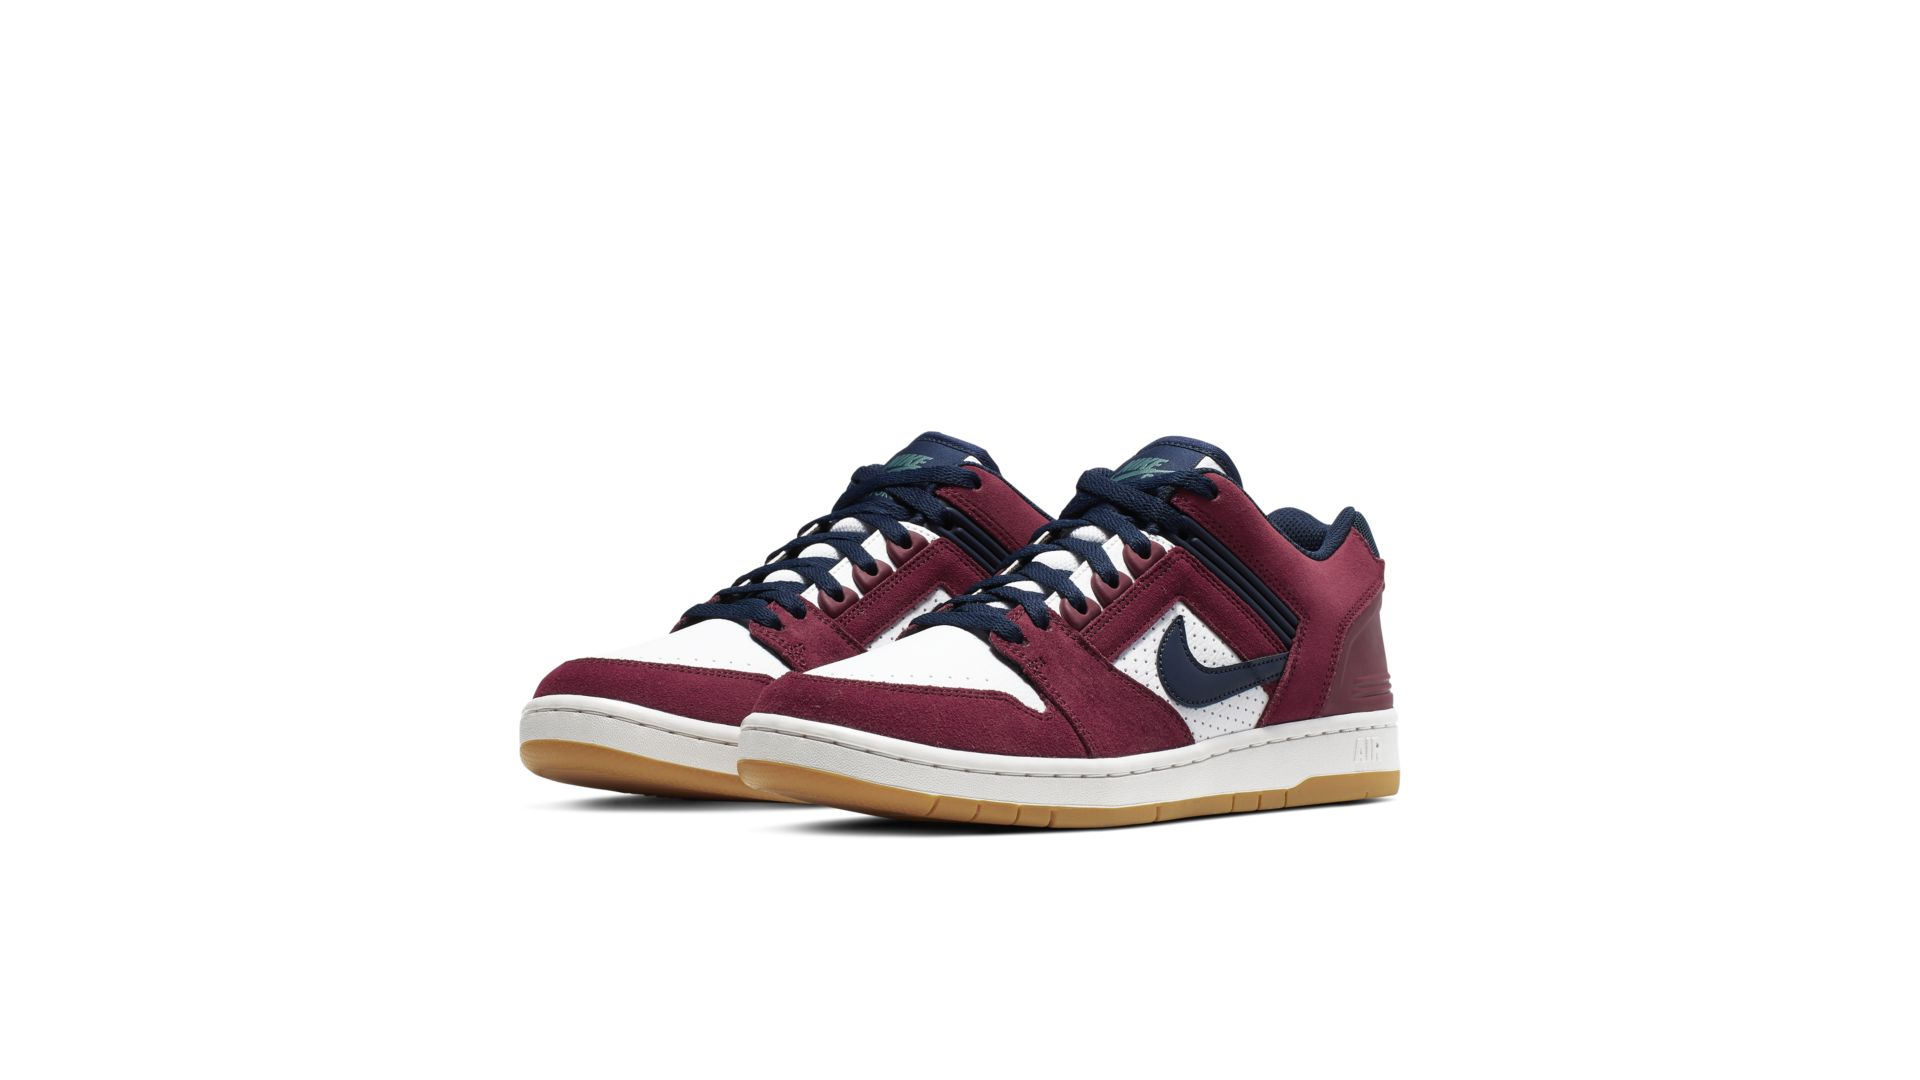 Nike SB Air Force 2 Low Team Red Obsidian (AO0300-600)